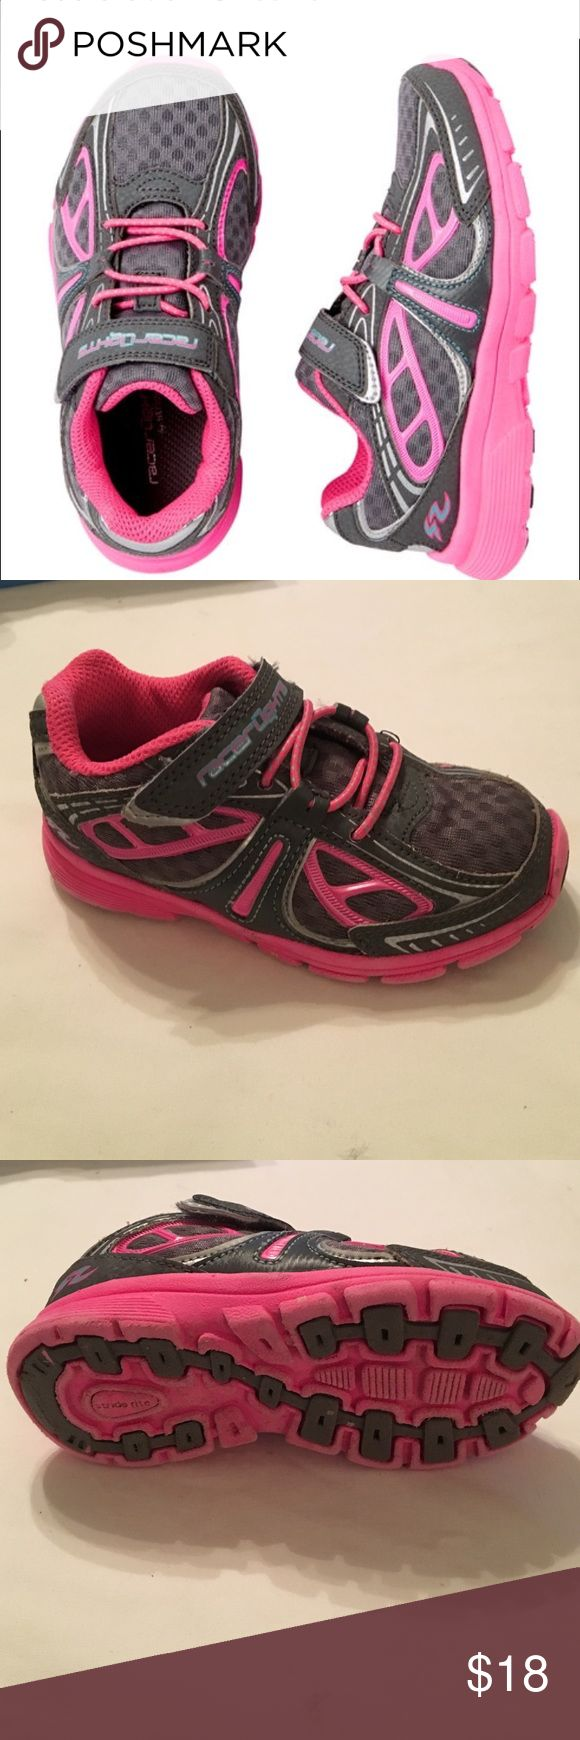 Stride Rite Grey/Pink Velcro Tennis Shoes Stride Rite Grey/Pink Velcro Girls Tennis Shoes, Size 7M, previously worn, still has lots of wear left. Stride Rite Shoes Sneakers